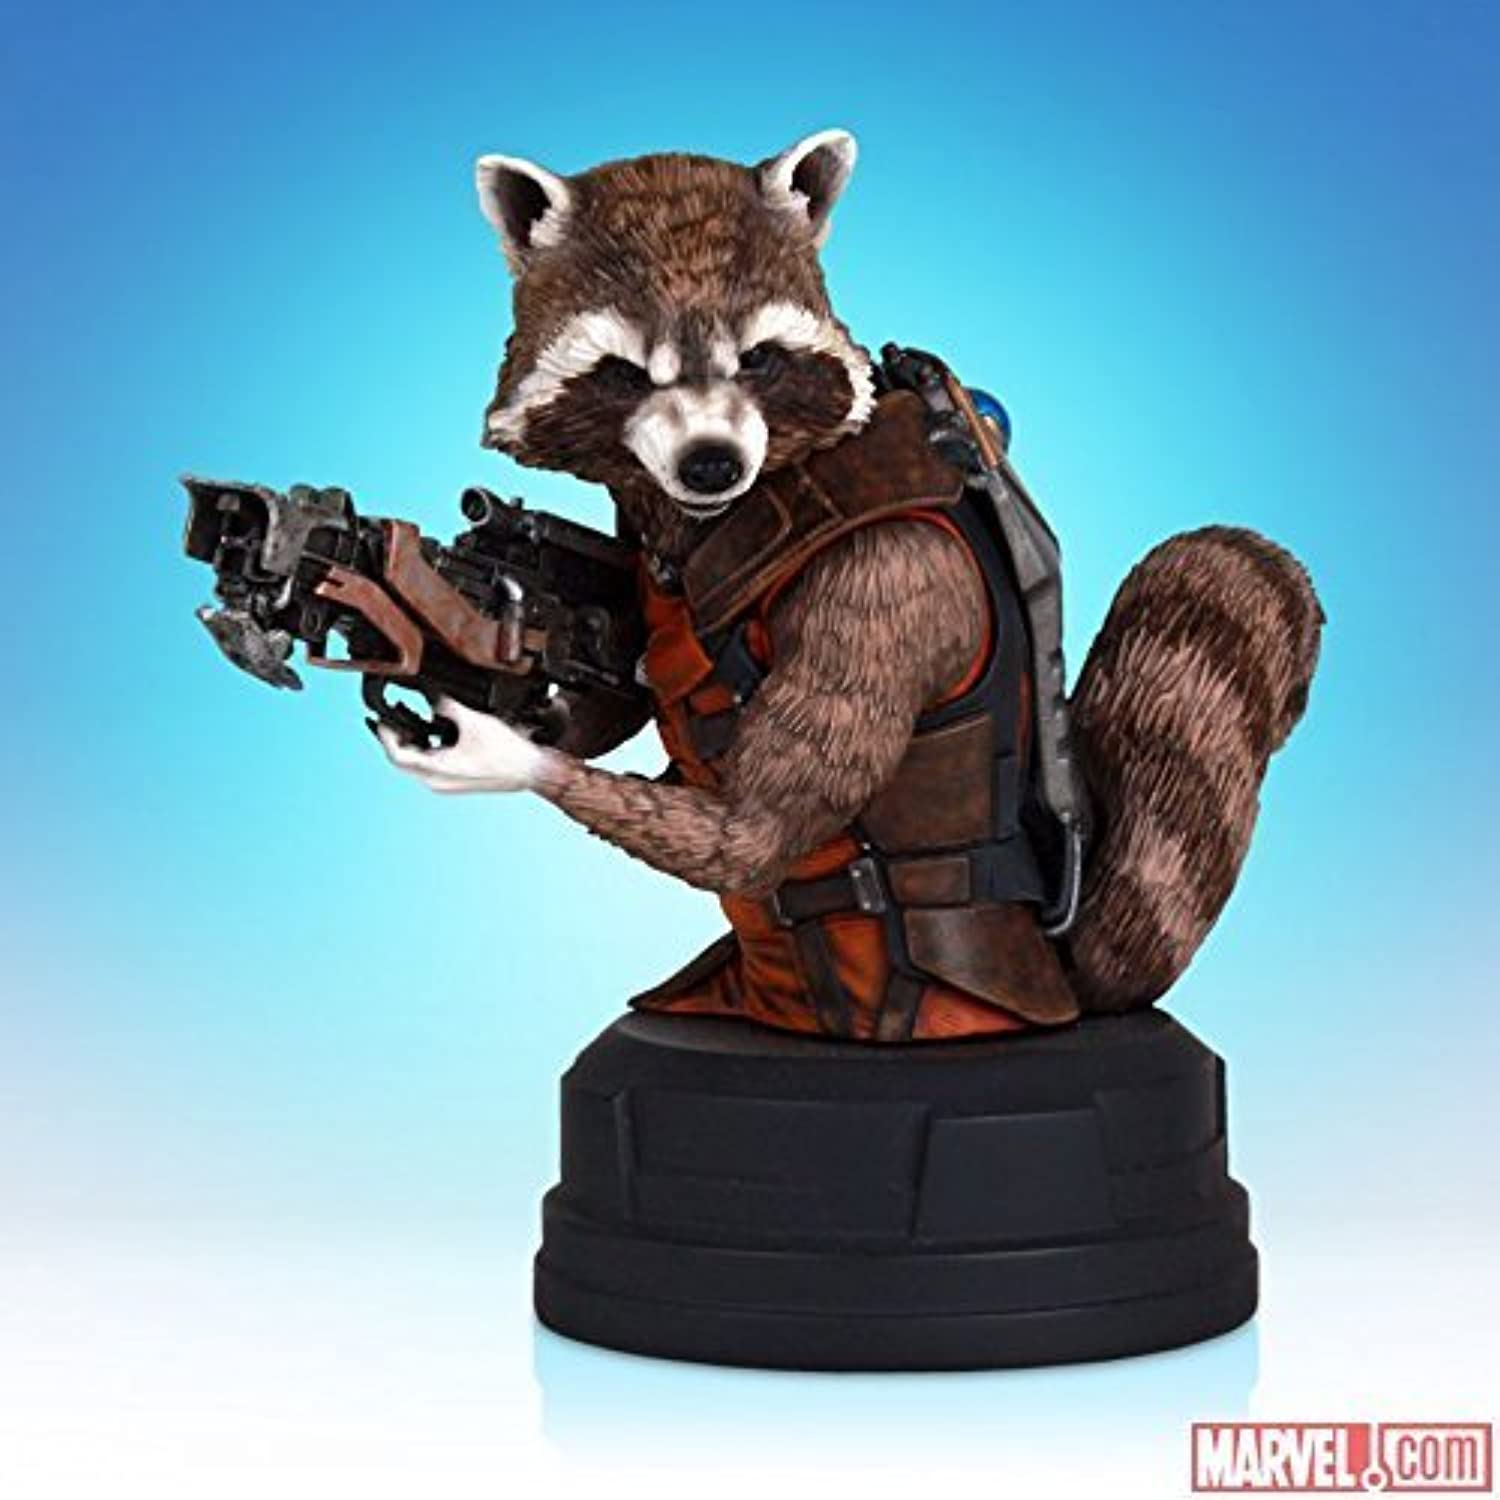 MARVEL GUARDIANS OF THE GALAXY ROCKET RACCOON EXCLUSIVE SDCC COMIC-CON MINI BUST by Gentle Giant